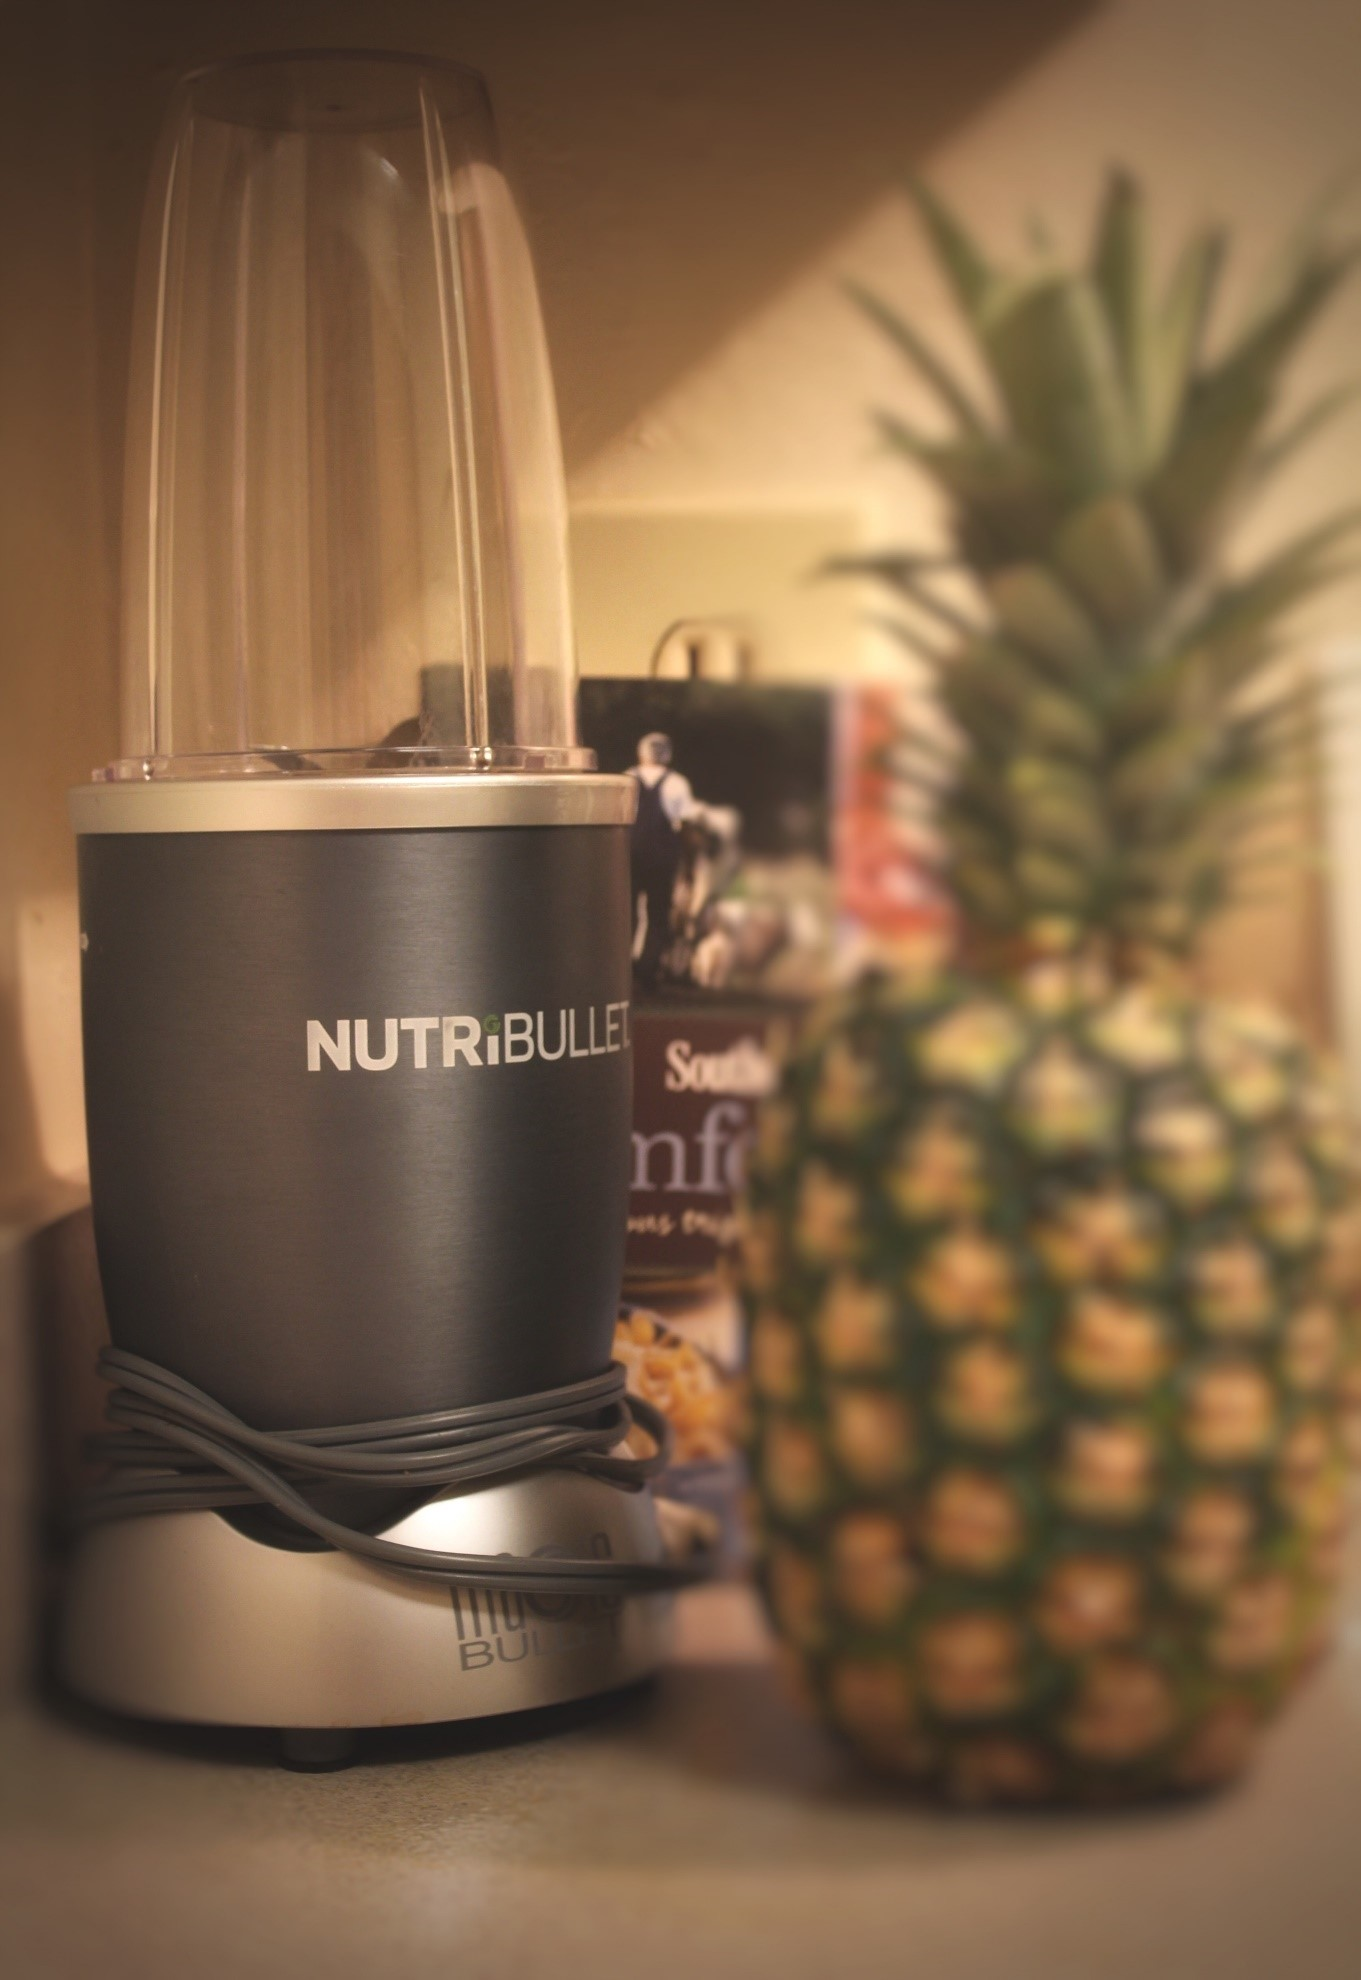 a Nutriblend blender with a pineapple on the side